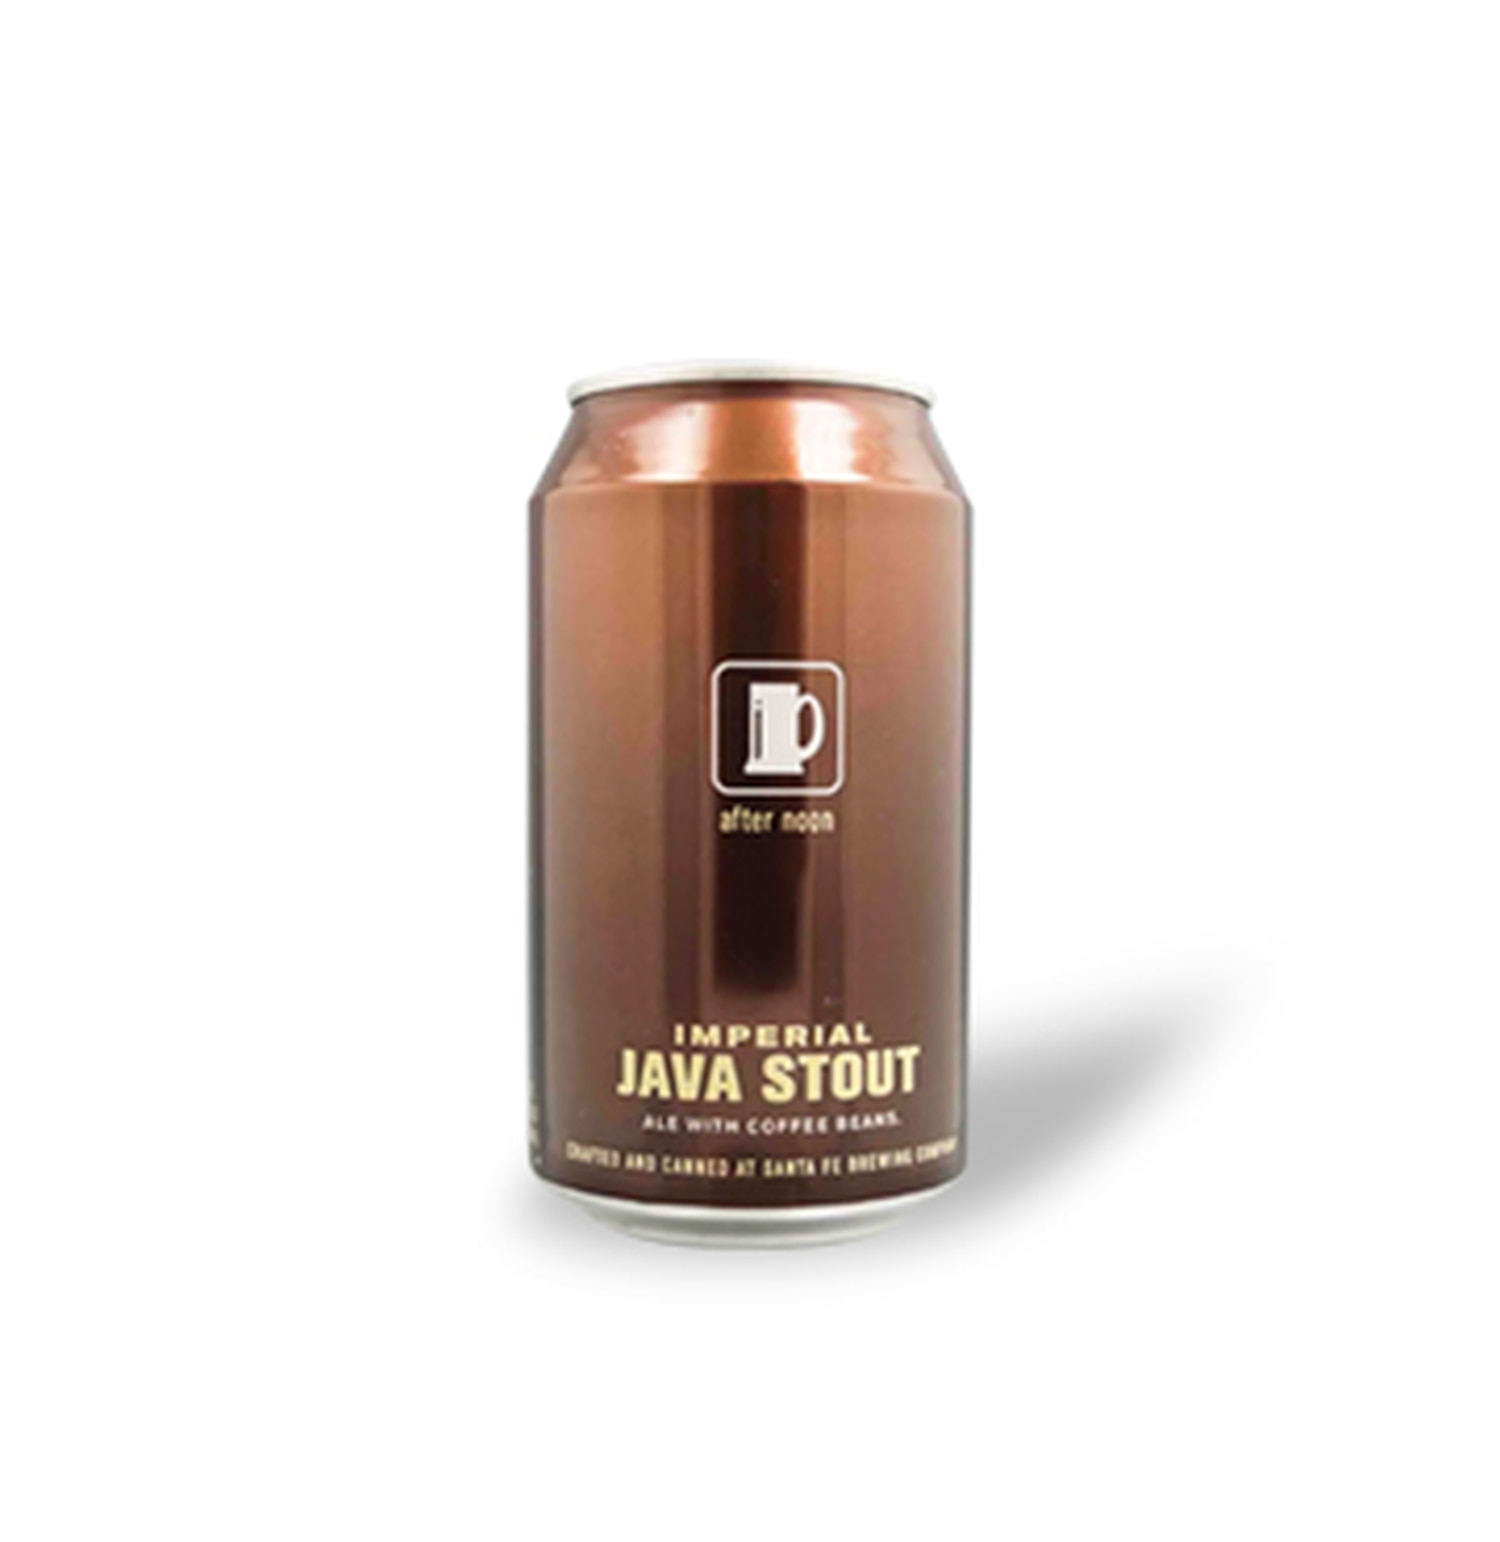 With so many local breweries to choose from, we asked the experts what they'd recommend from their own operations. David Ahern-SerondeSanta Fe Brewing Co. Java stout. It's tasty and big. Also, coffee comes through and has a placebo caffeine buzz. People argue that. I don't. Brian LockSanta Fe Brewing Co.I personally love our Freestyle Pilsner. My tastebuds have evolved. It's a beer that light and easy to drink and you can have more than a couple and not feel like you're hammered. Jeffrey KaplanRowley Farmhouse Ales I'd say the Saison du Sarlacc. It's a mixed-fermentation, dry-hopped spelt saison, a great farmhouse-style beer. John RowleyRowley Farmhouse AlesI would say the upcoming bourbon barrel-aged Oud Bruin is going to be delightful. Still a ways to go on that beer, but it is coming along nicely. Michael KarrDuel BrewingAt this moment, I'd choose Bad Amber because I had one last night and it was delicious! Plus, I think it's a good entry into the Belgian style; lightly hopped, the malt and yeast come through with a bit of coriander spice. Todd YochamDuel BrewingCezanne Vérité. [It's a] barrel-aged saison [with] 10.4 percent ABV. Paul MalloryBlue Corn Brewery I think our [Road Runner] IPA is one of the best. It's aggressively hoppy, but it's still very drinkable. Rod TweetSecond Street Brewery Tough question. Boneshaker Special Bitter. Nothing too fancy by current standards and a pretty loose interpretation of a bitter, I gotta admit, but the style is a great platform and has everything: full-flavored, nice yeast character and highly drinkable because of it's unusual dry-hop combination of oily floral East Kent Goldings and sharp, spicy/fruity Citra. John WalkerSecond Street BreweryFulcrum. It's big, juicy, wildly aromatic and extremely drinkable for such a big IPA.